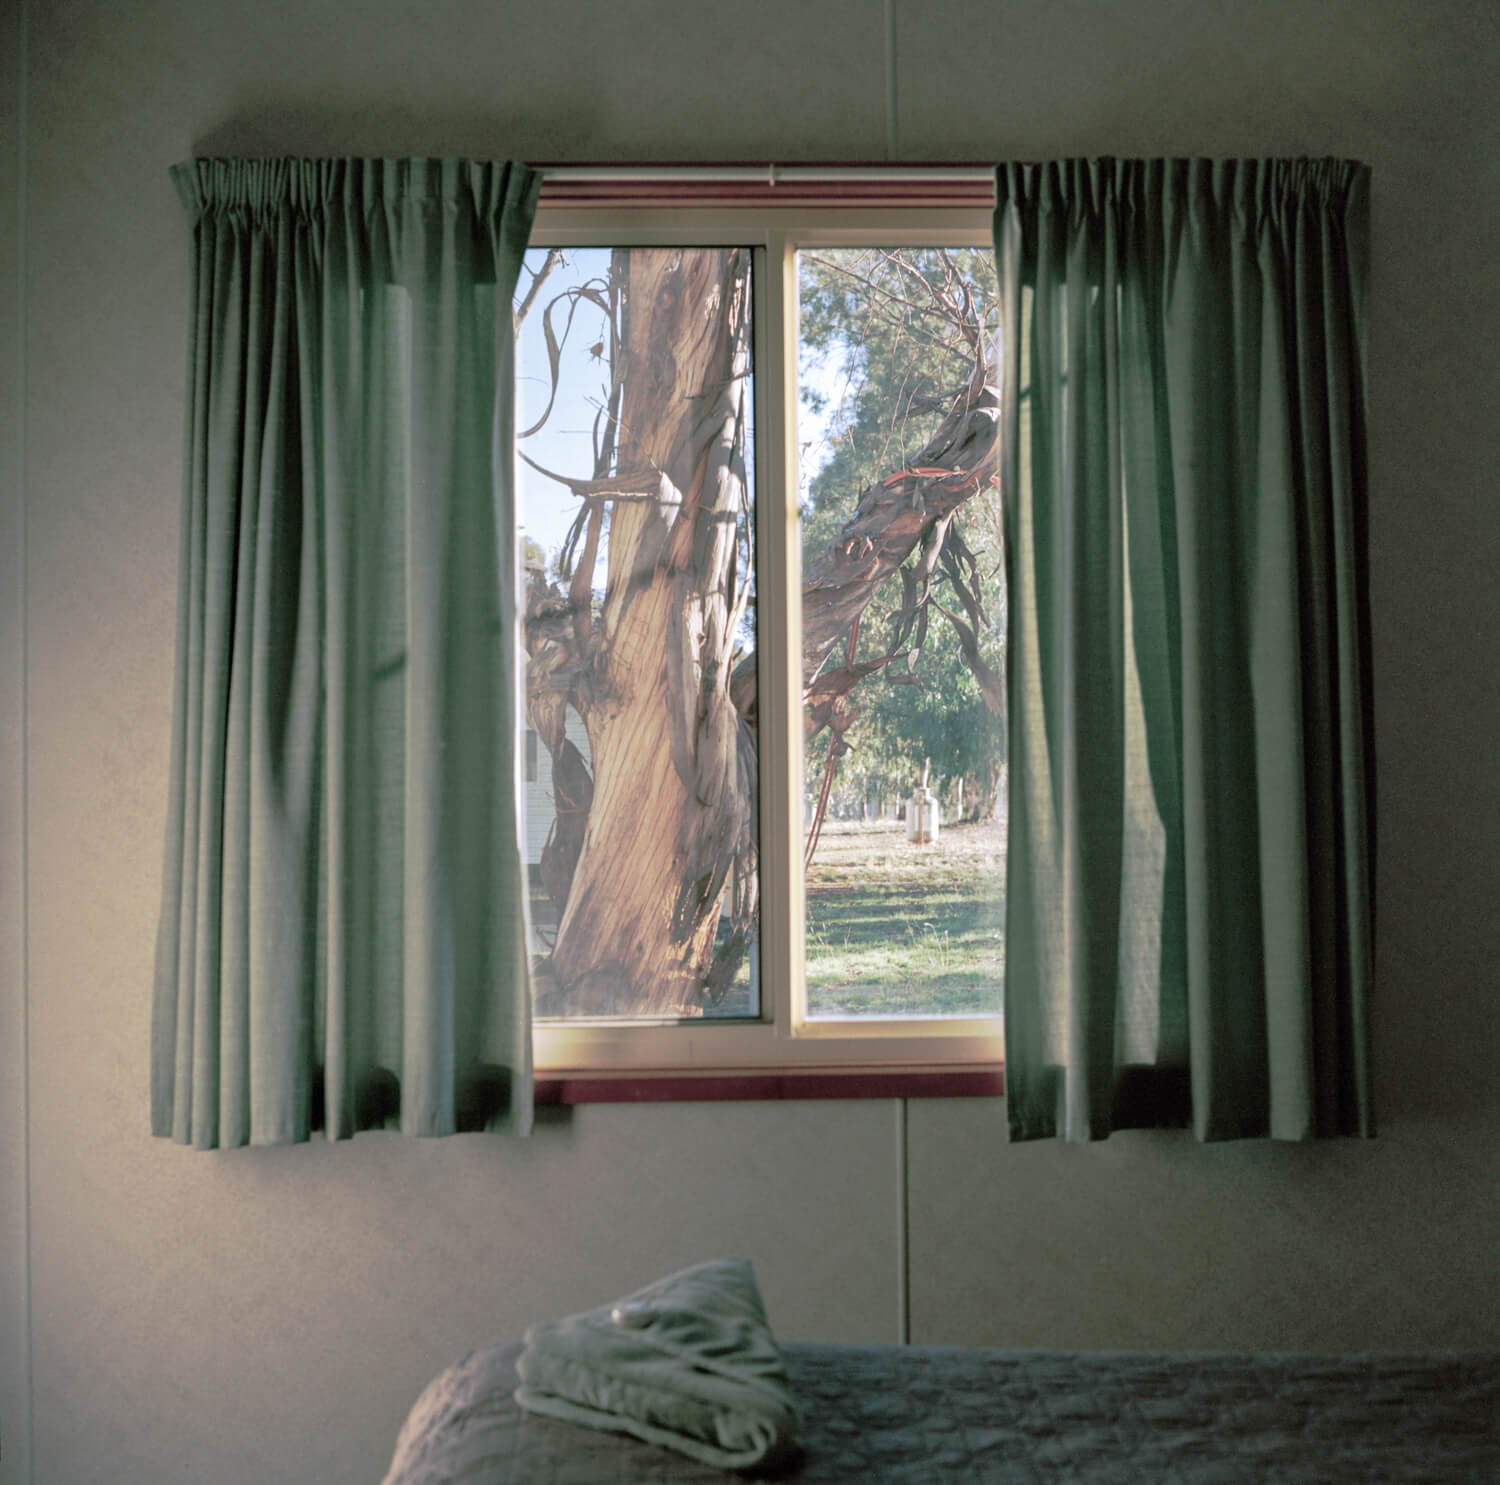 Ioanna Sakeelaraki - Everything I Remember Forgetfully the south west collective of photography light through windows